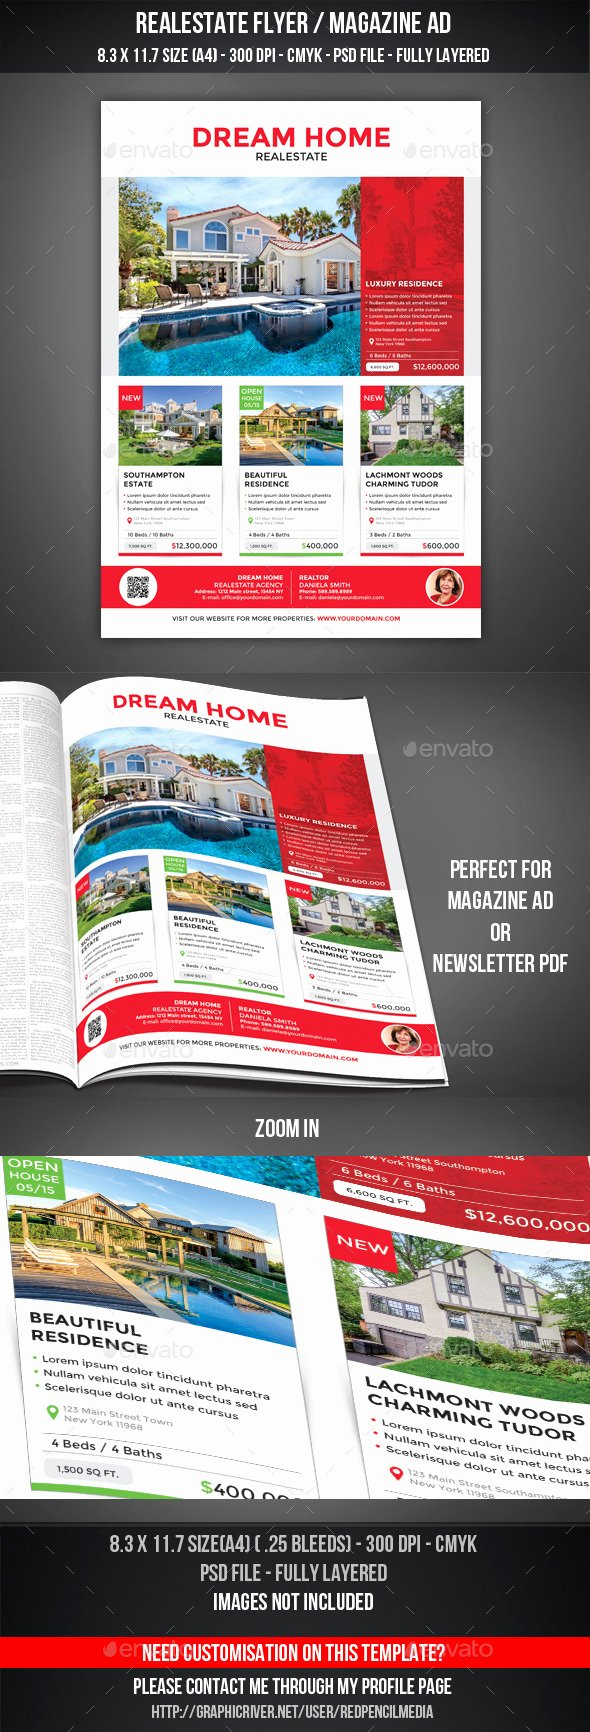 Magazine Ad Template Free Luxury Shop Template Realestate Flyer Tinkytyler